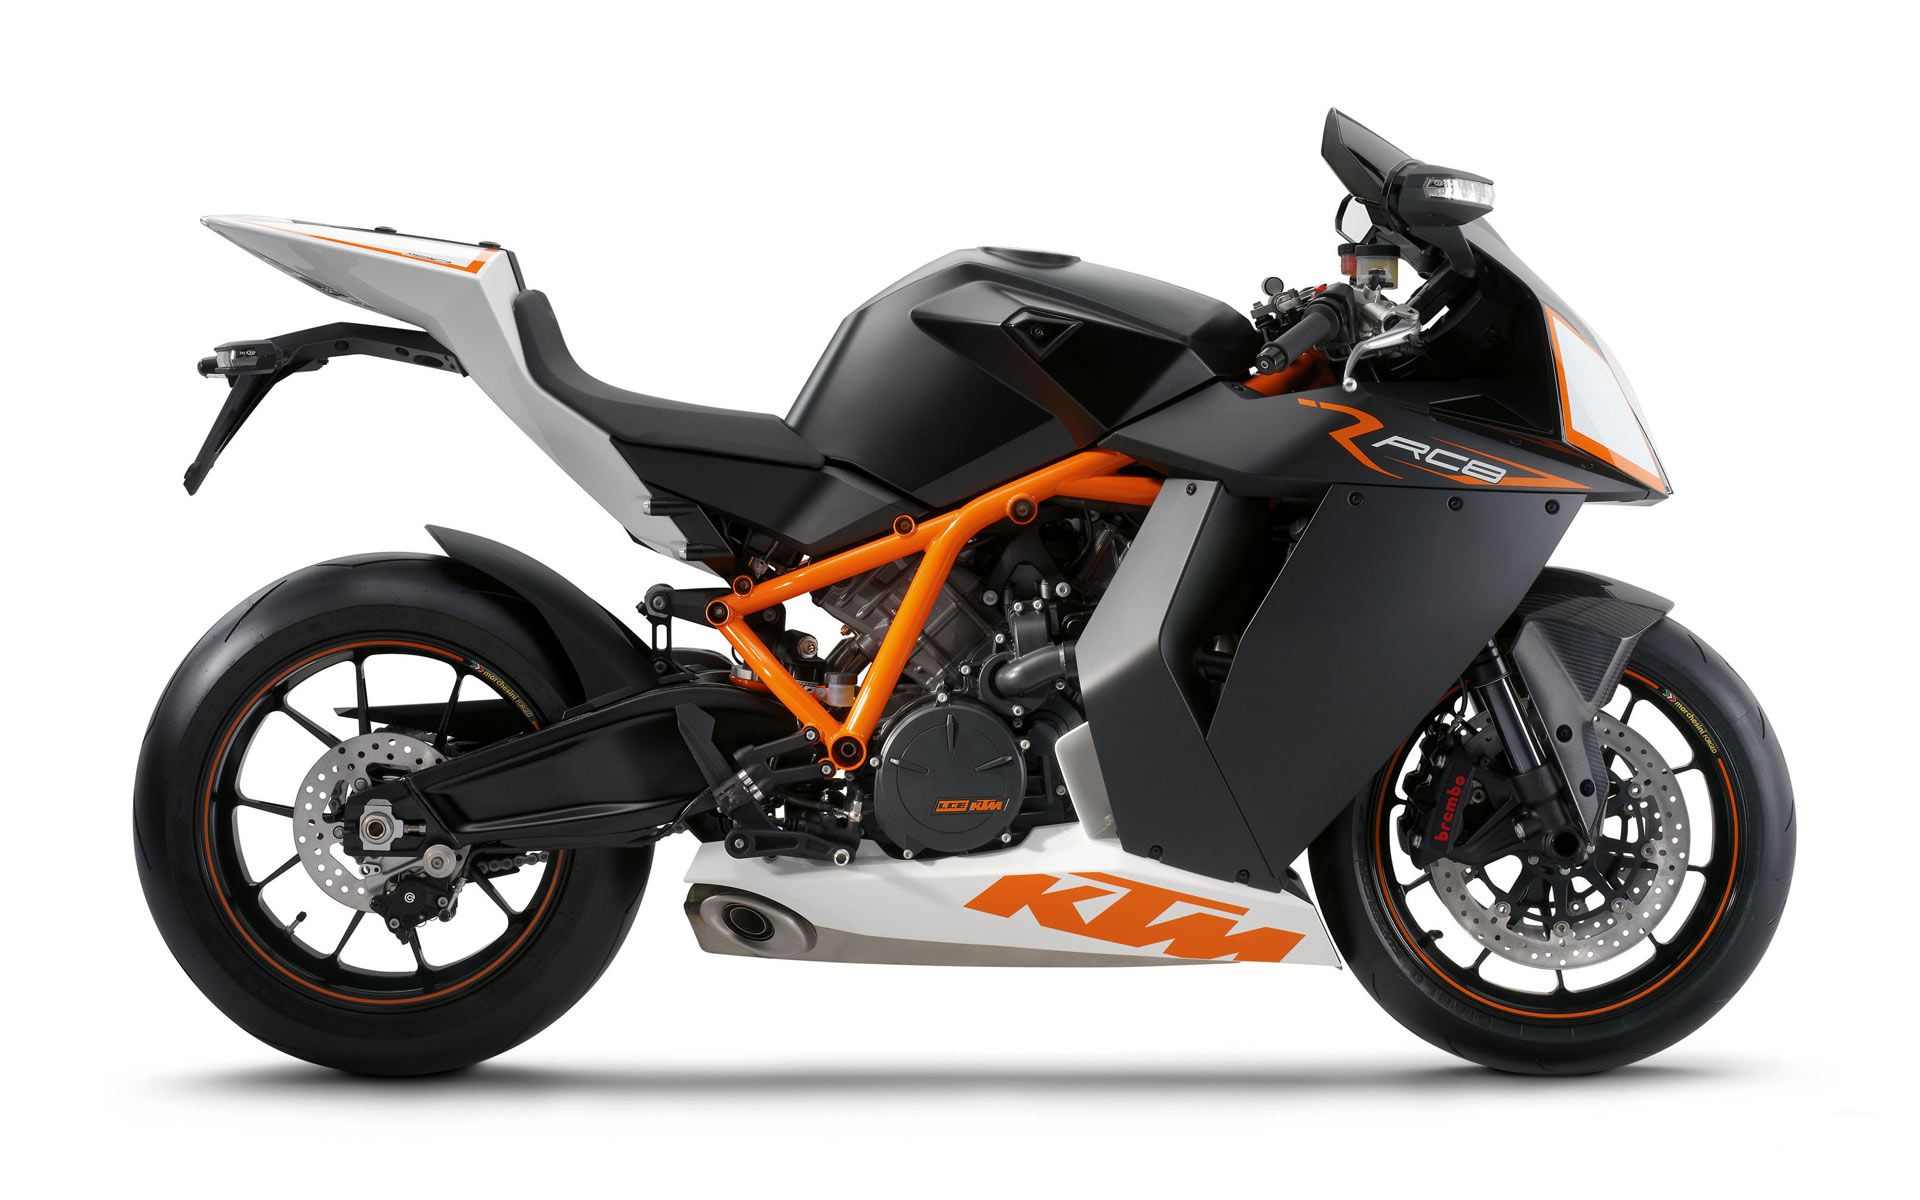 Ktm motorcycles hd wallpapers free wallaper downloads ktm sport - Free Hd Motorbike Wallpaper Wicked Wallpaper Free Hd Wallpapers Hd Motorbike Wallpapers Pinterest Motorbikes